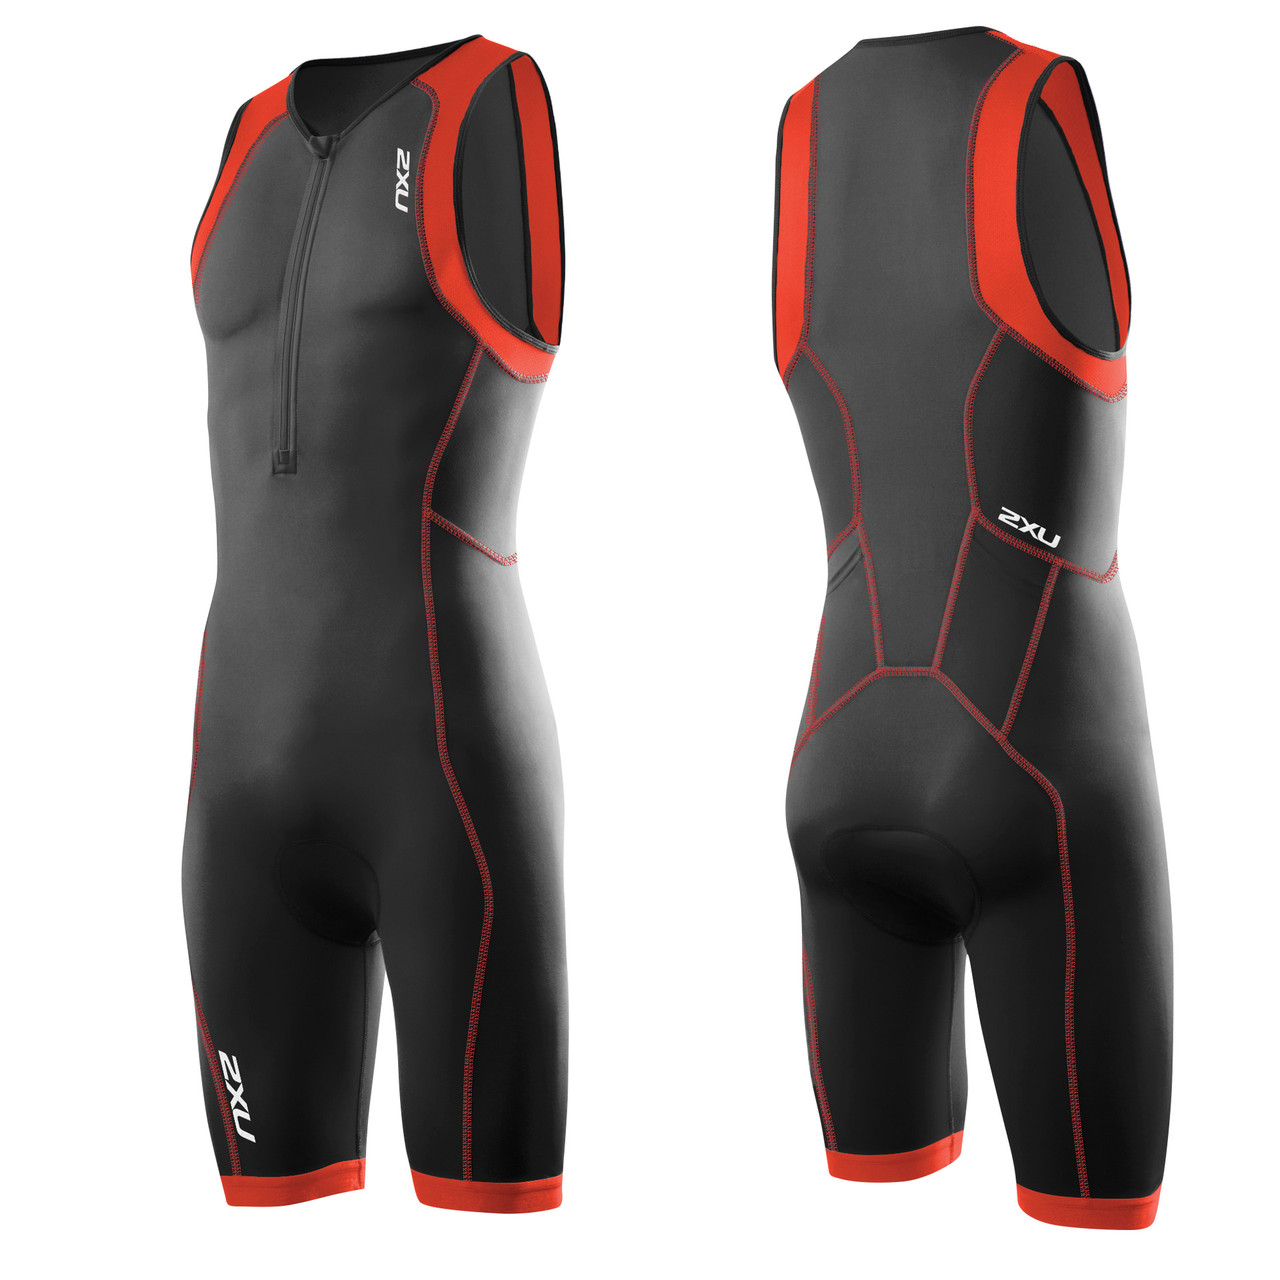 2XU Men's Active Tri Suit - 2016 price